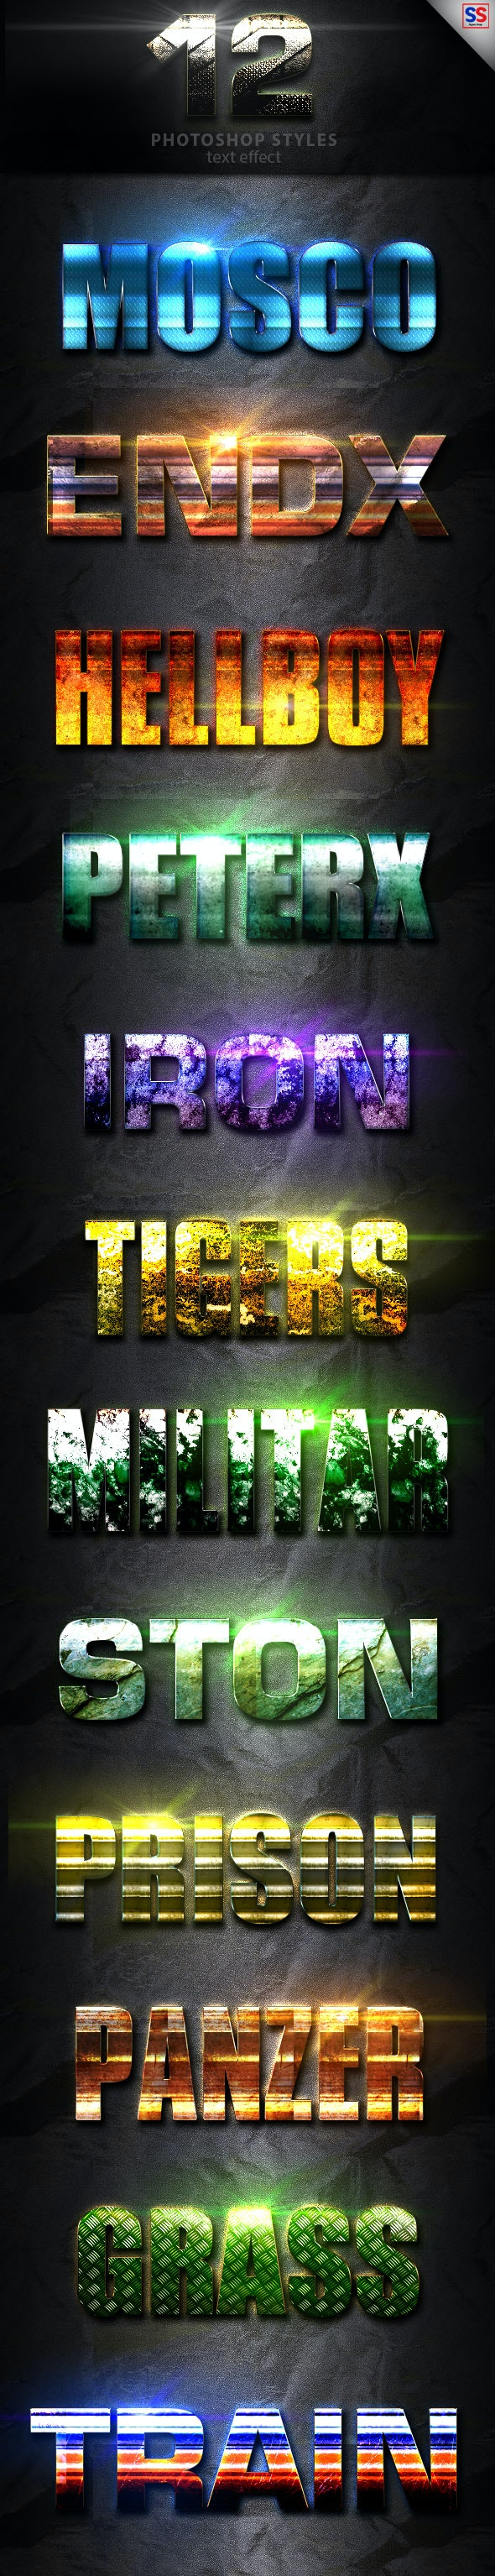 12 Light Photoshop text Effect Vol 15 - Text Effects Styles